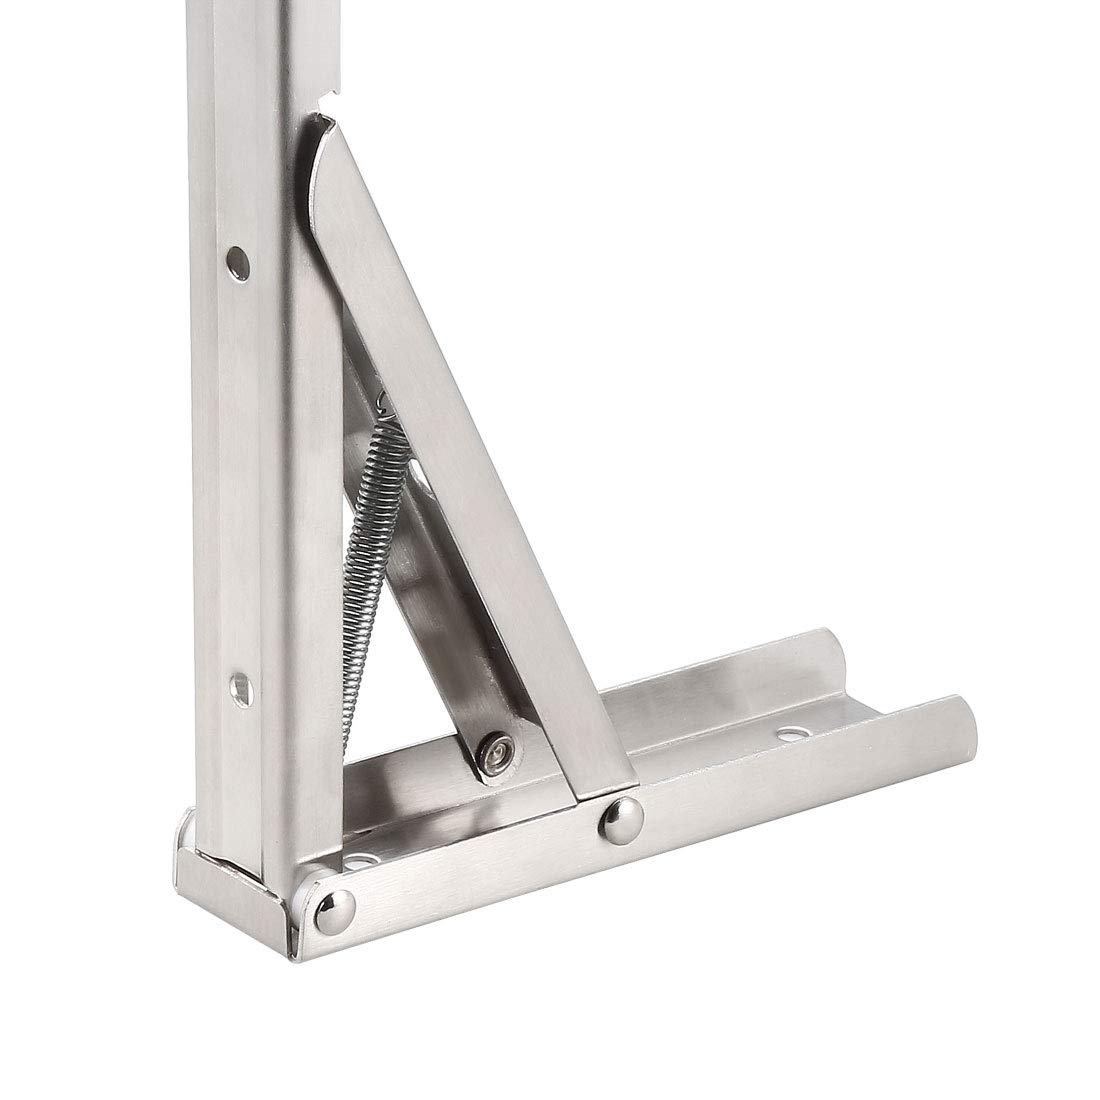 uxcell/® Folding Bracket 7.6 inch 195mm for Shelf Table Desk Wall Mounted Support Collapsible Long Release Arm Space Saving Stainless Steel